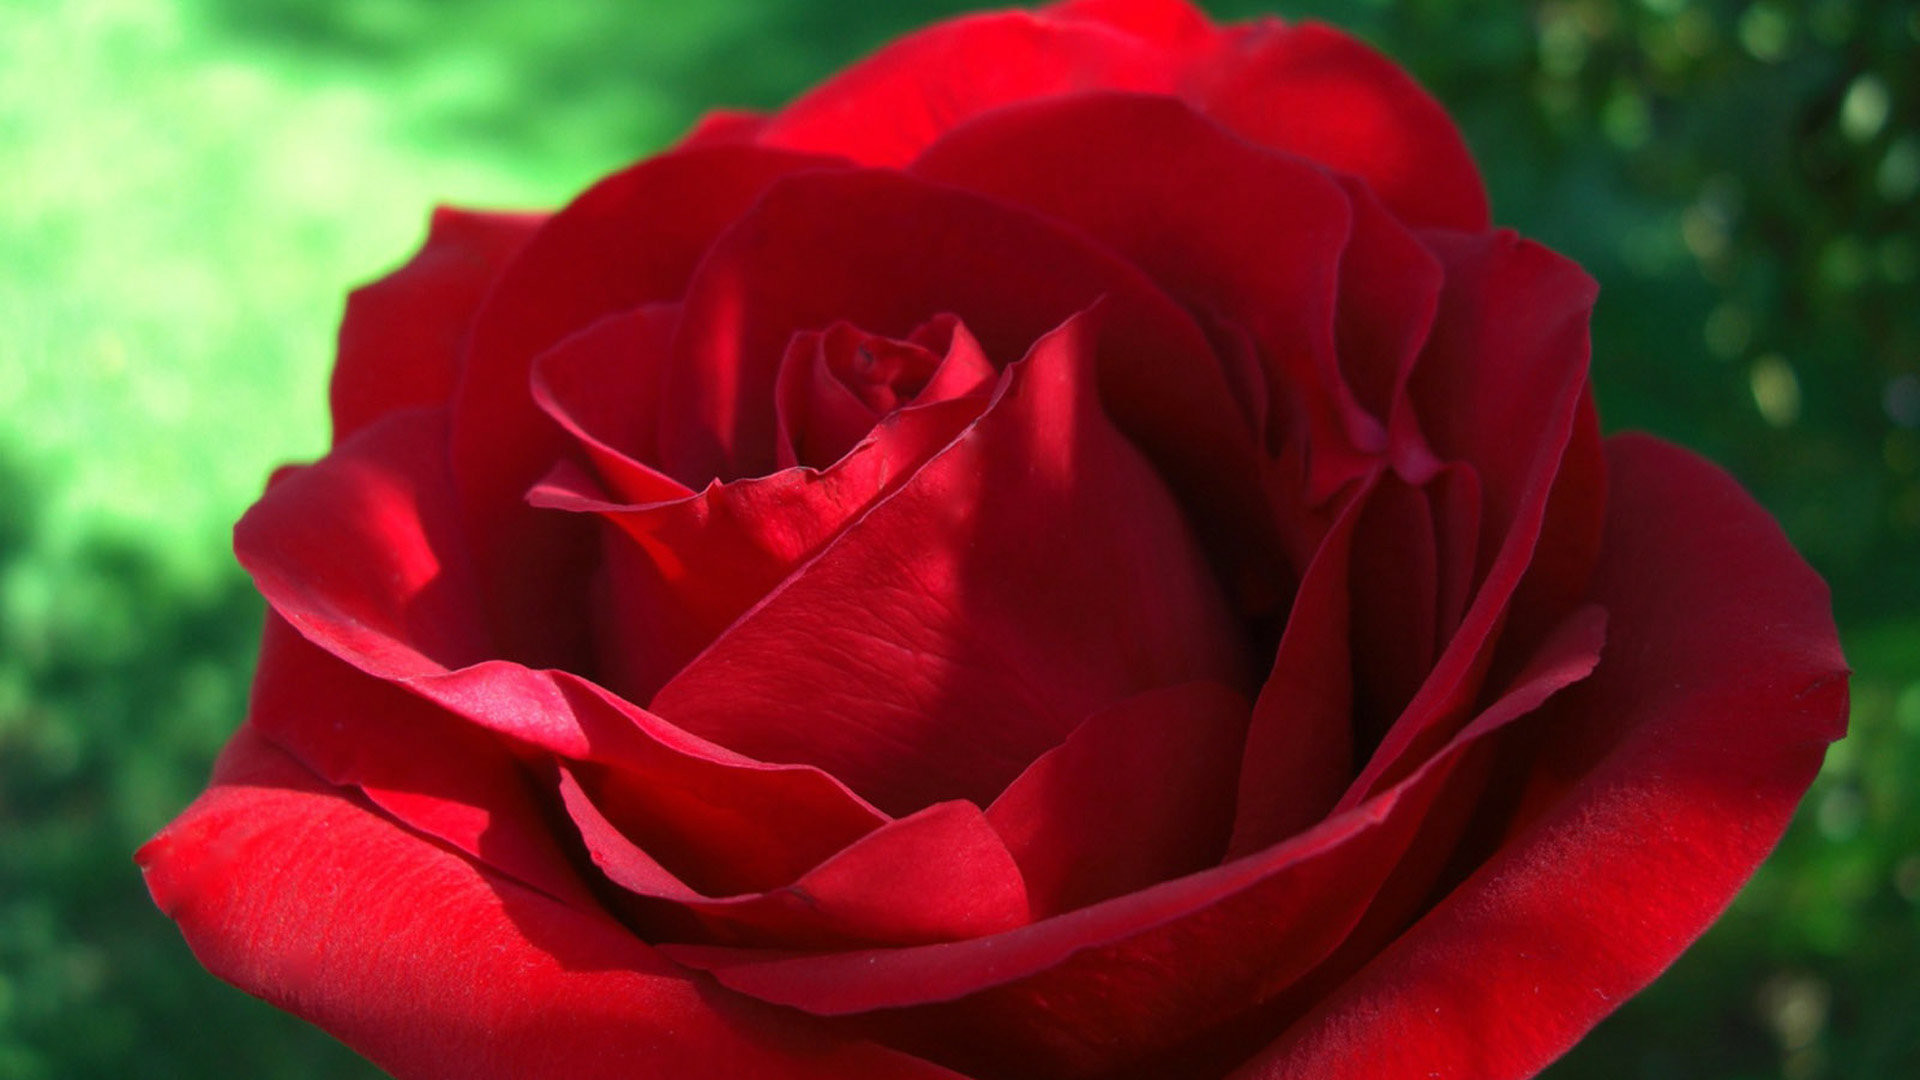 Red Roses Wallpapers For Desktop (50+ Images